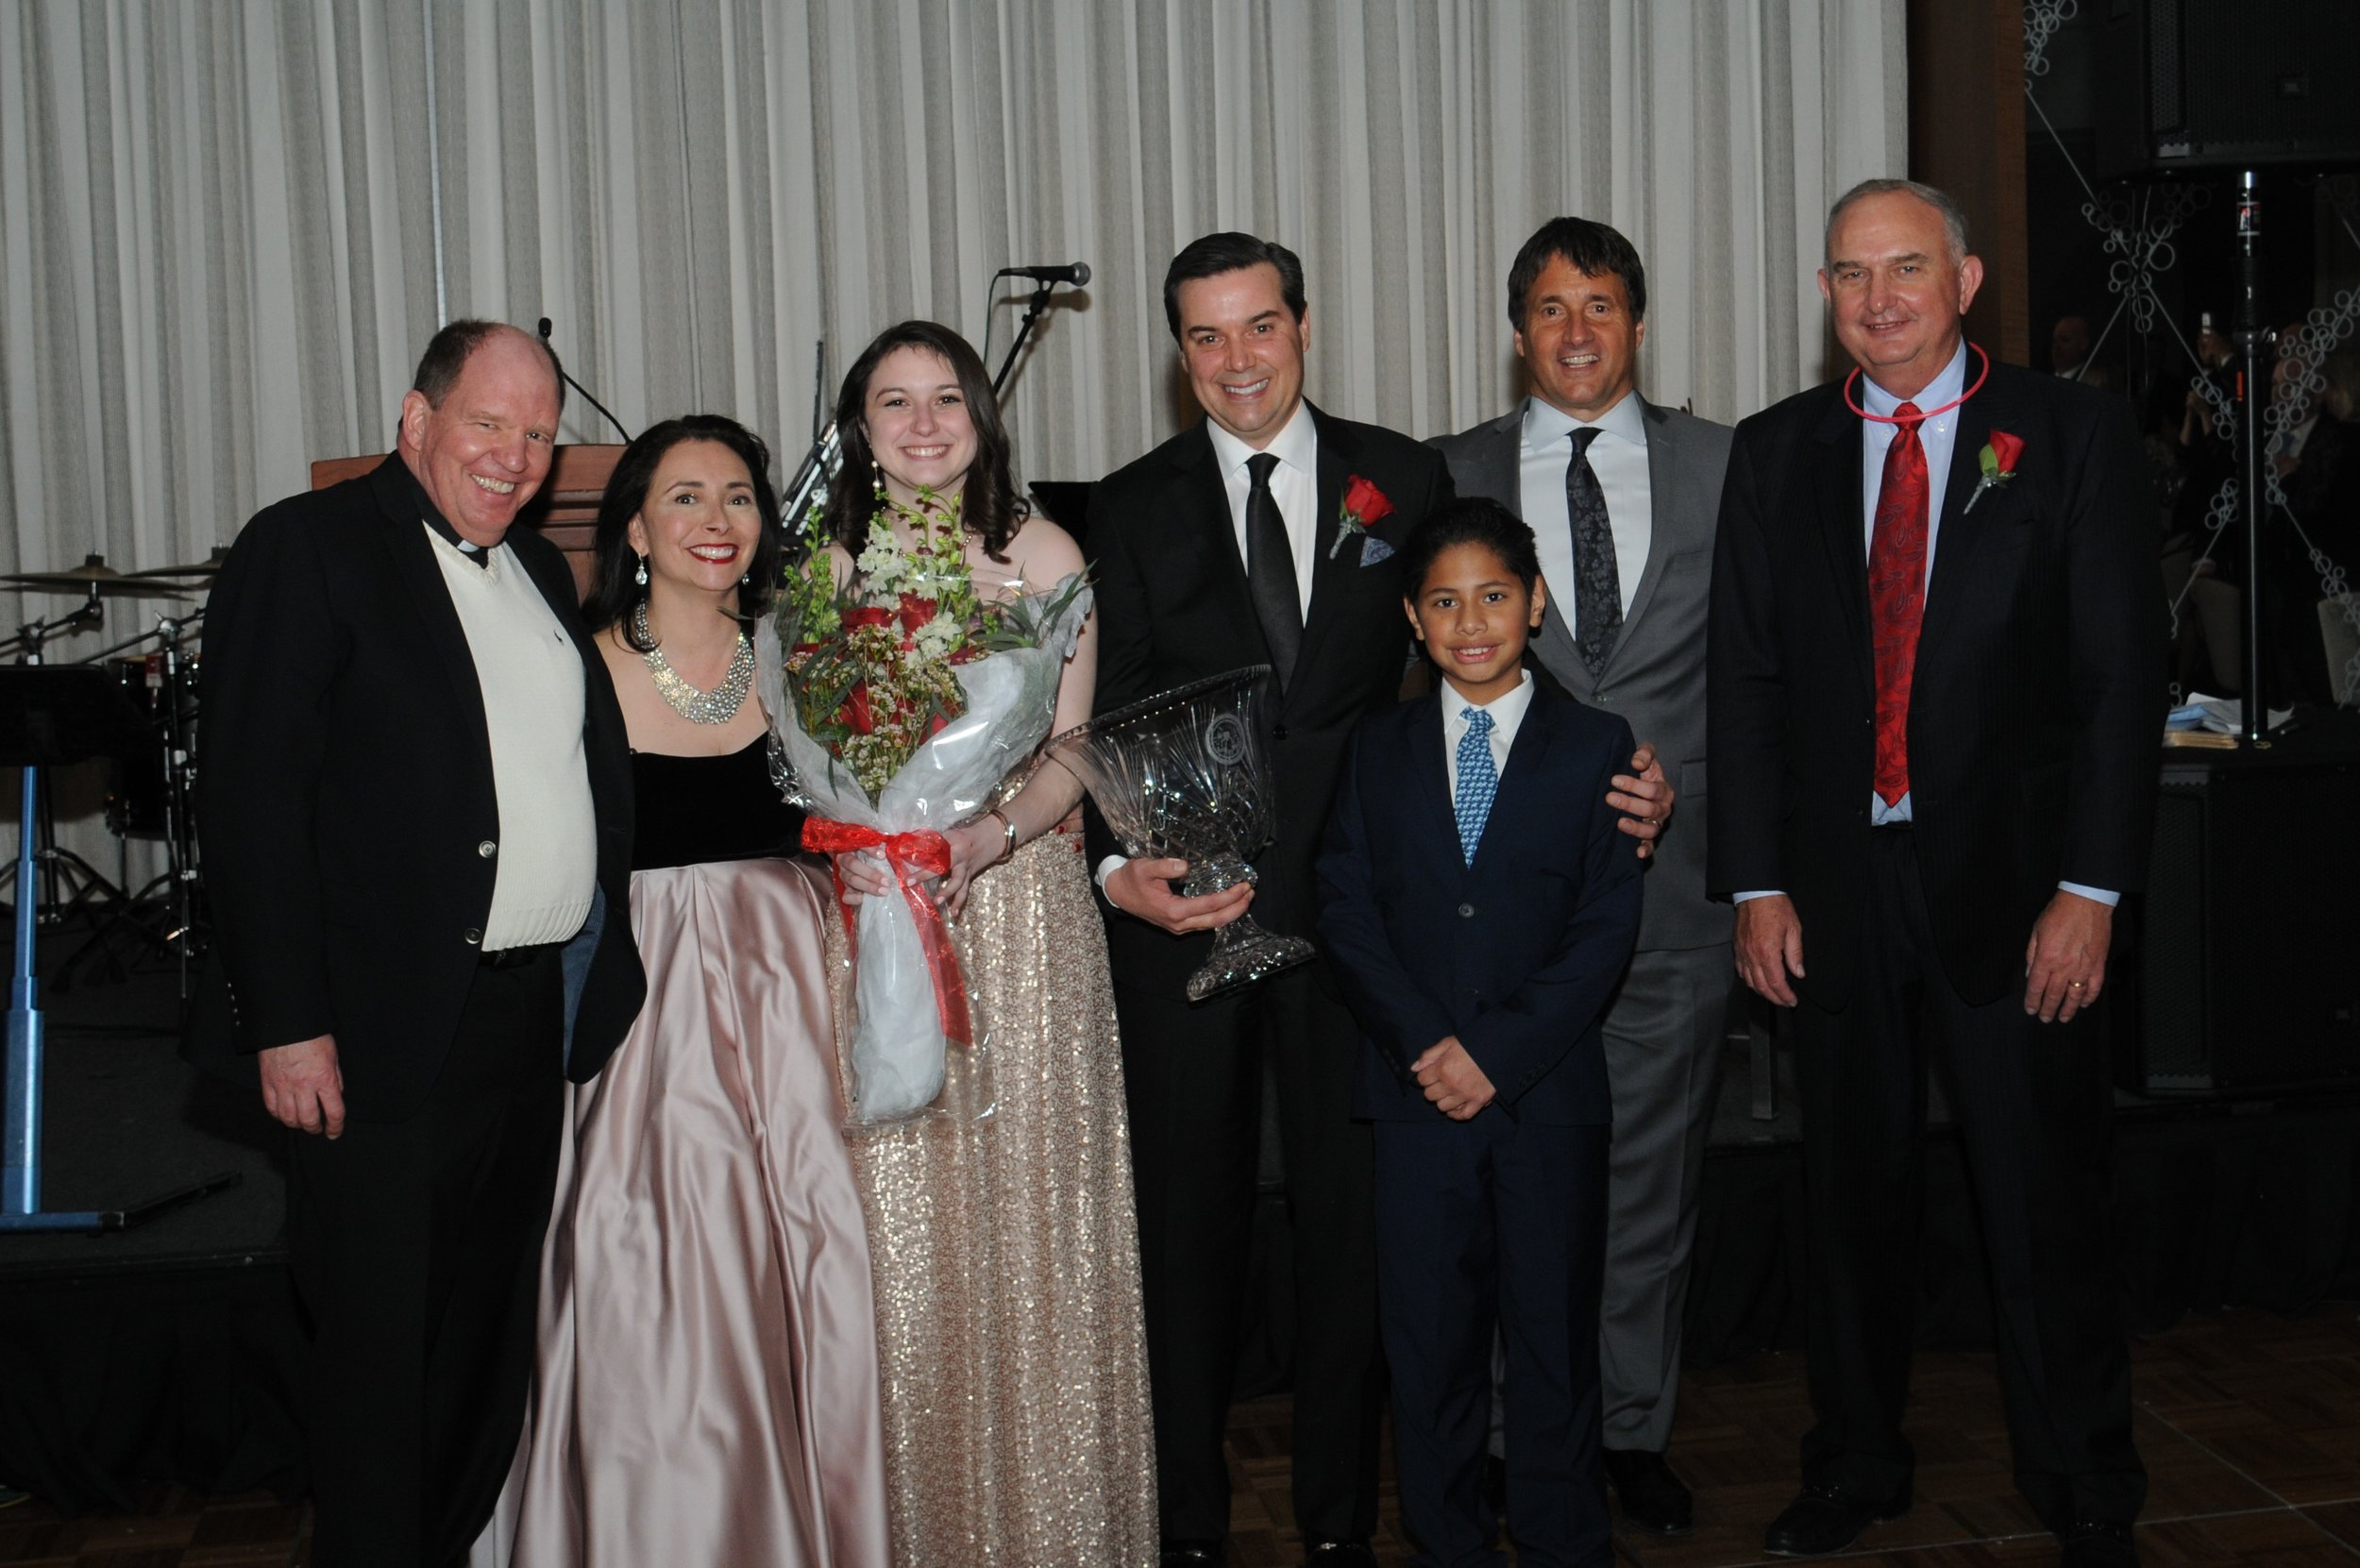 Couple of the Year Mark '90 and Mindy Hacker and family with Fr. Paul, Mike Zunica and Ernie Mrozek.